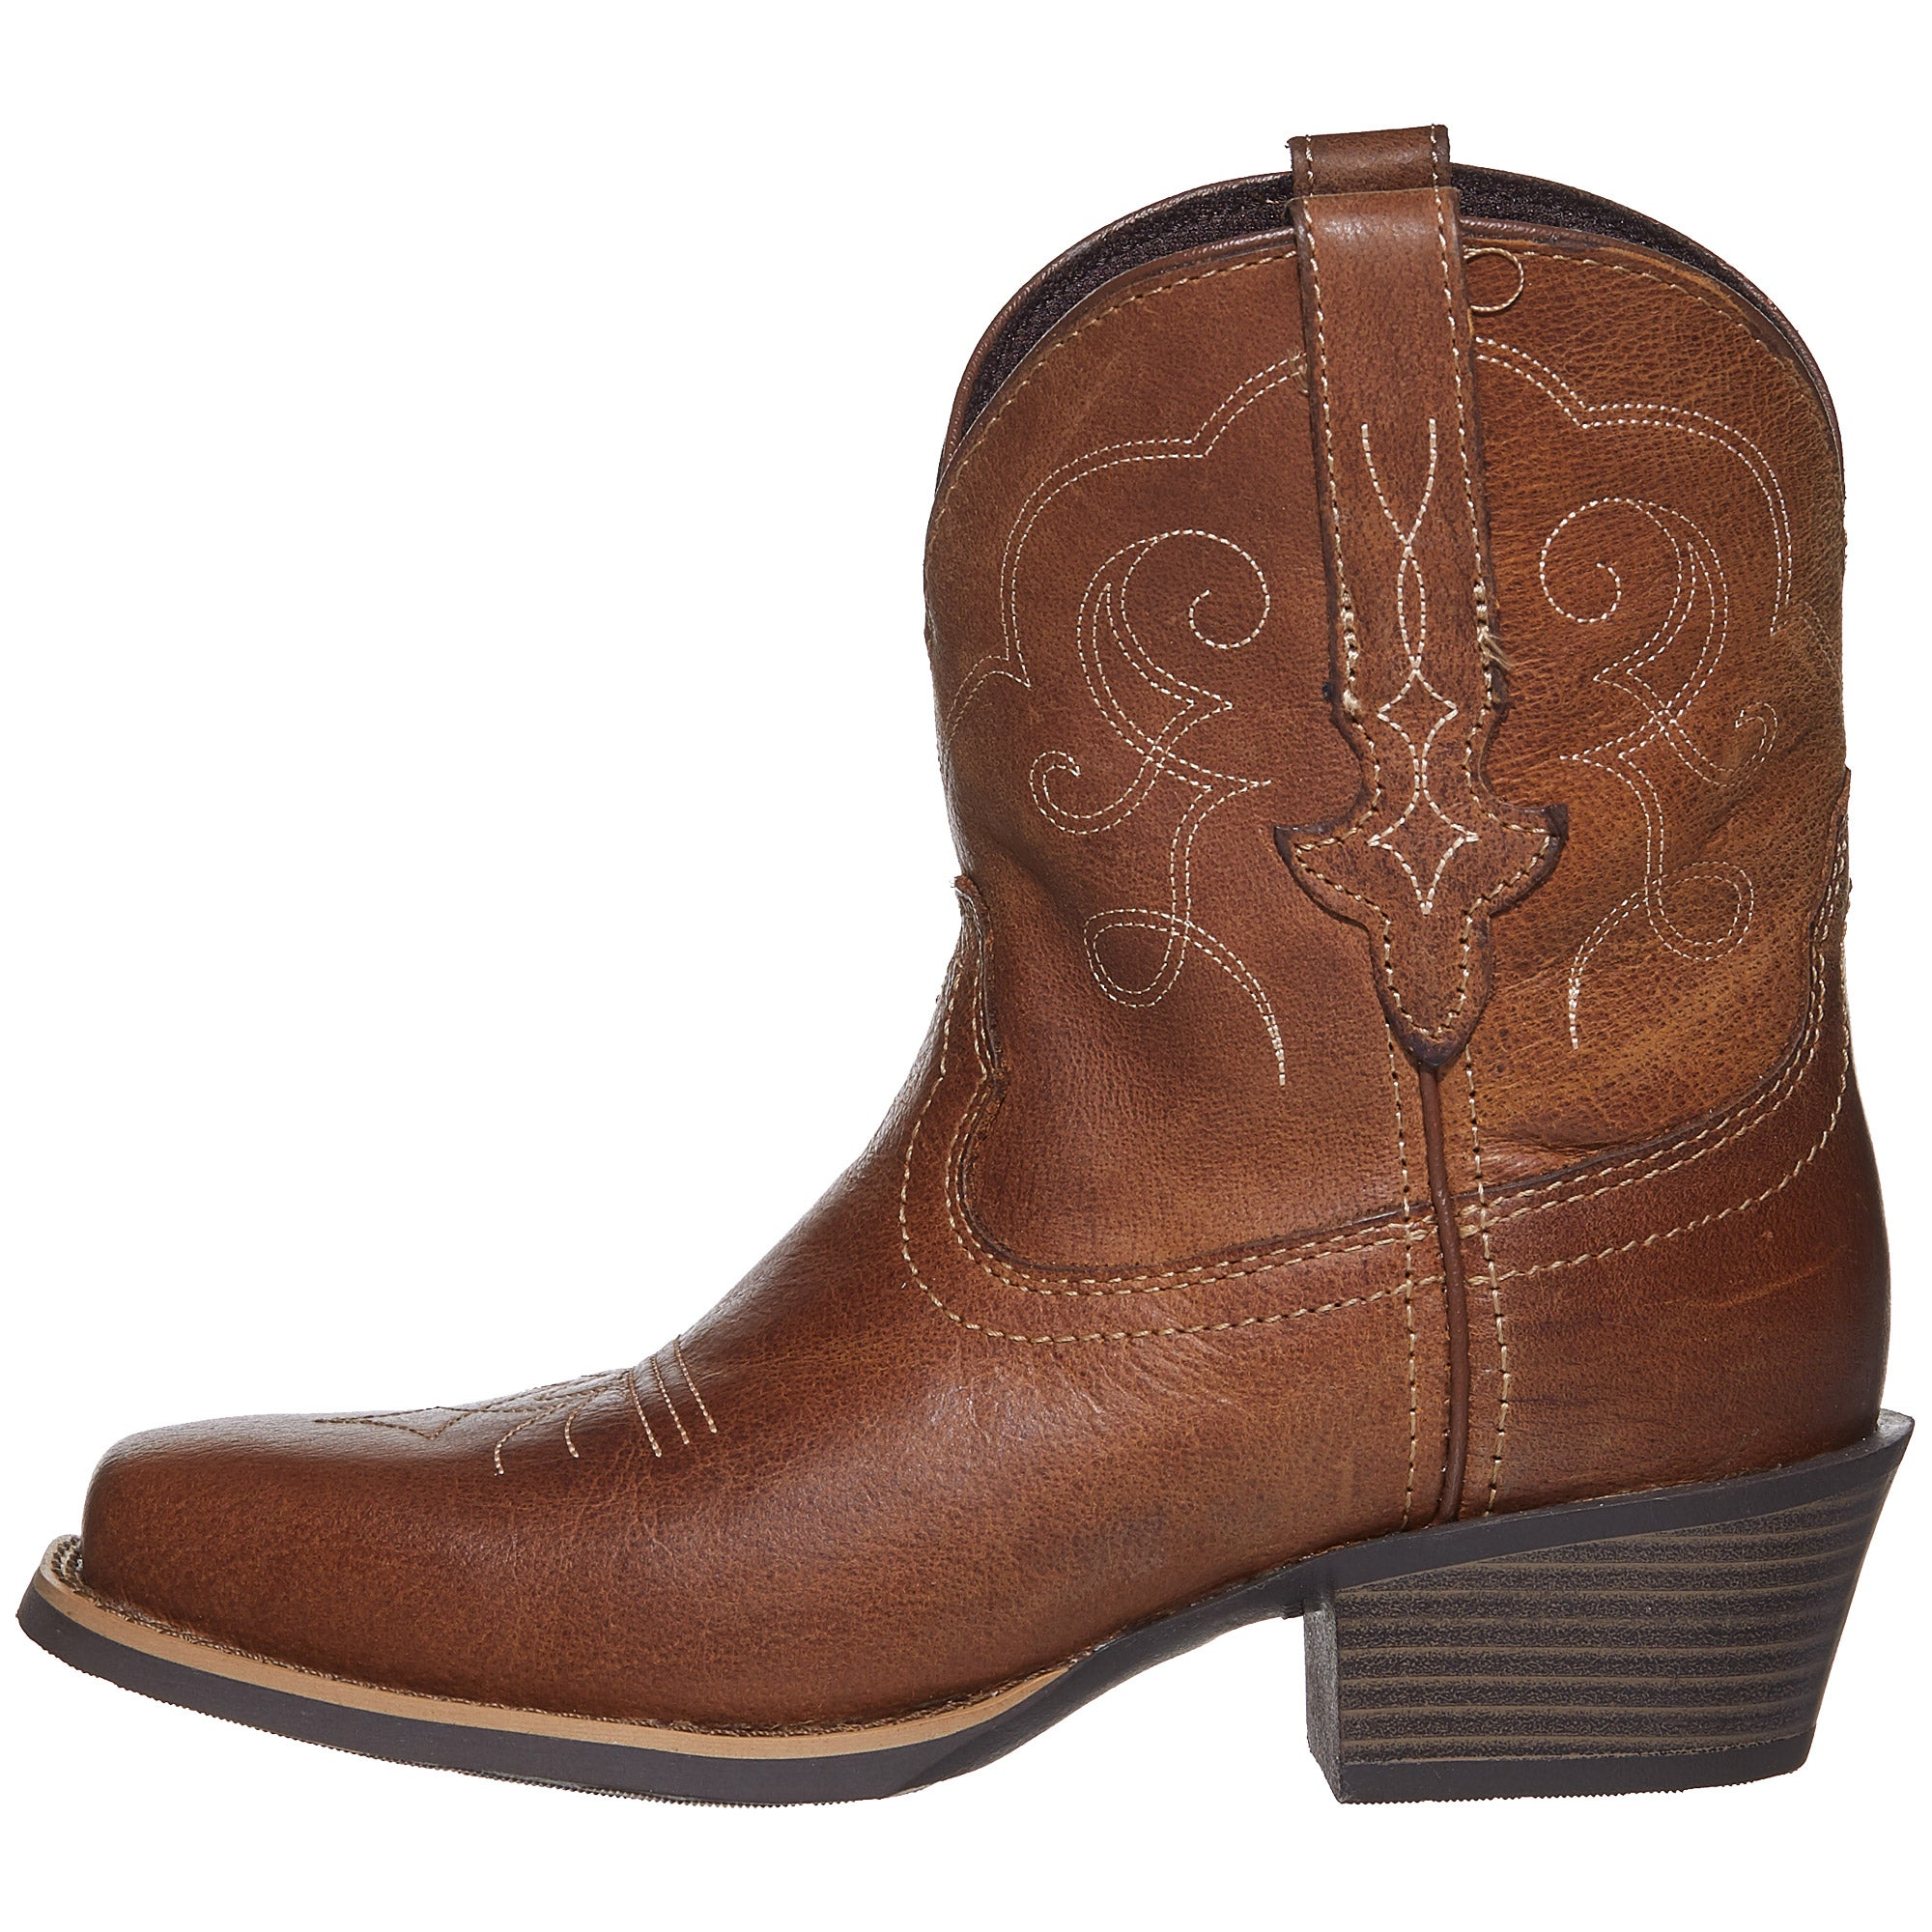 5e68b724214 Justin Gypsy Chellie Women's Cowboy Boots/Booties - Riding Warehouse